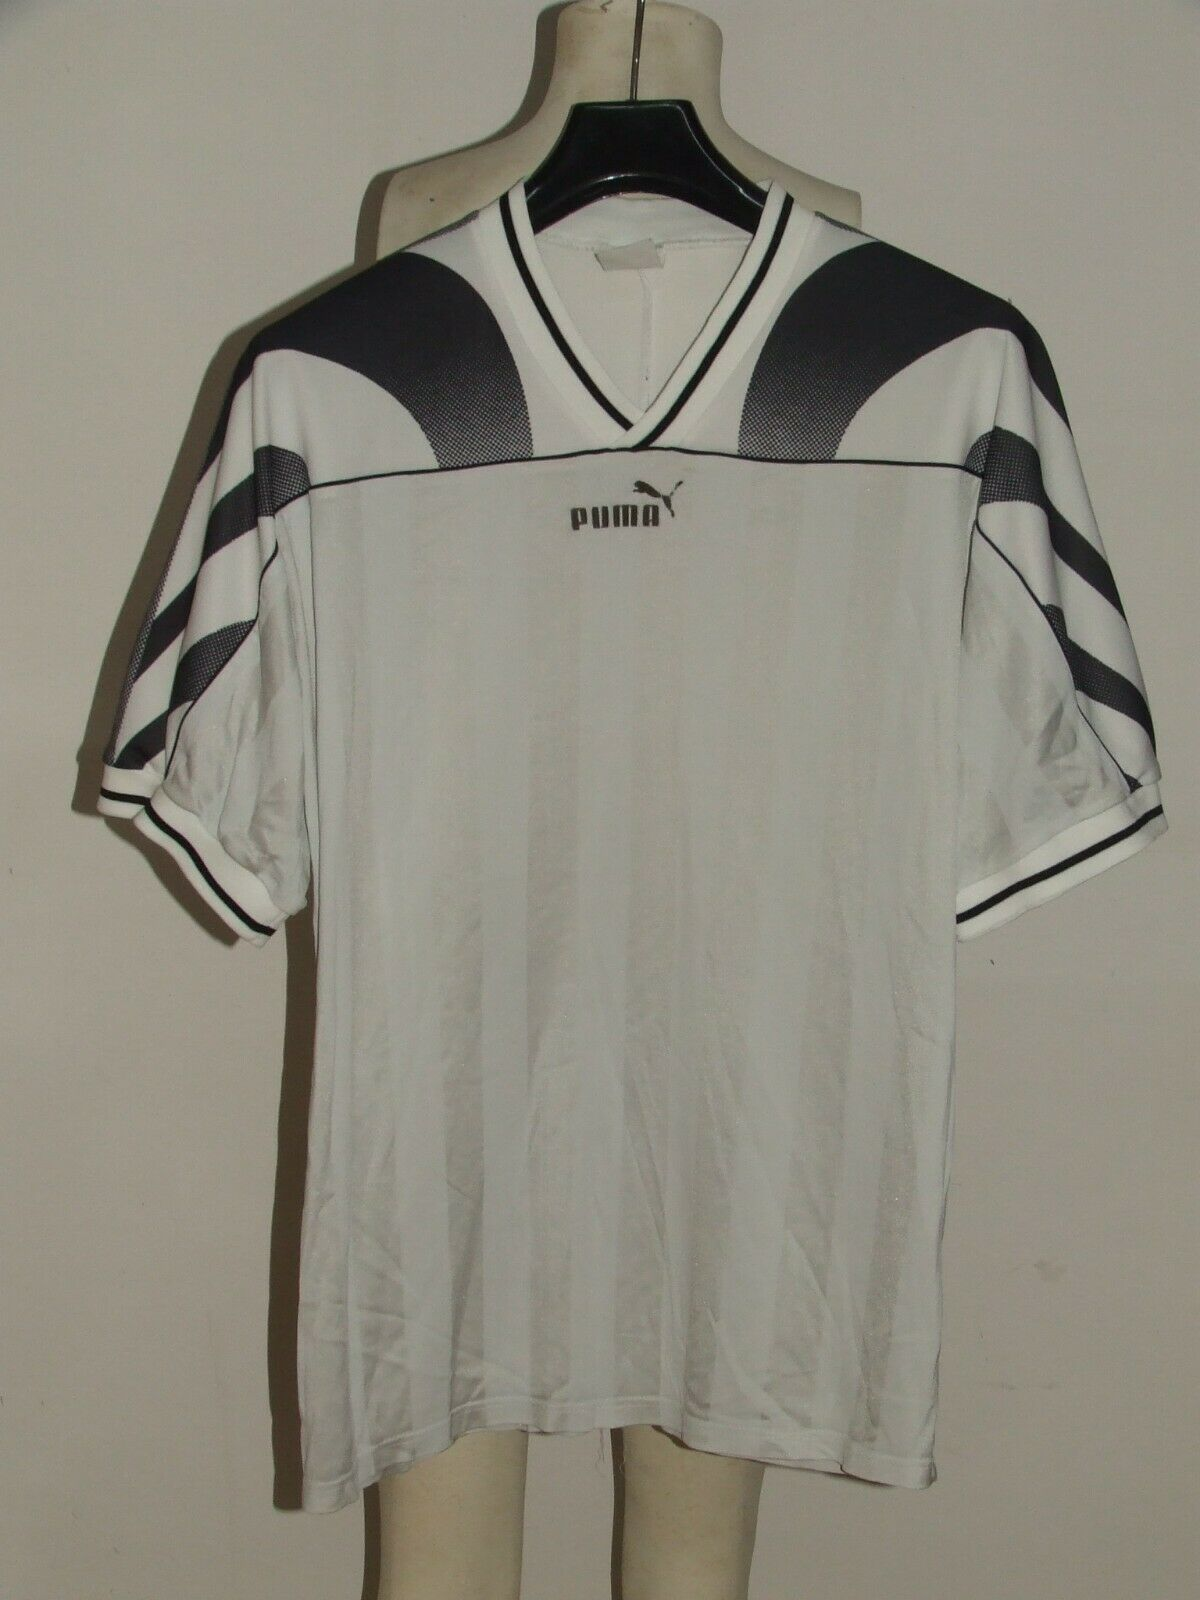 SOCCER JERSEY TRIKOT VINTAGE PUMA MADE IN HUNGARY 80'S (048) size L